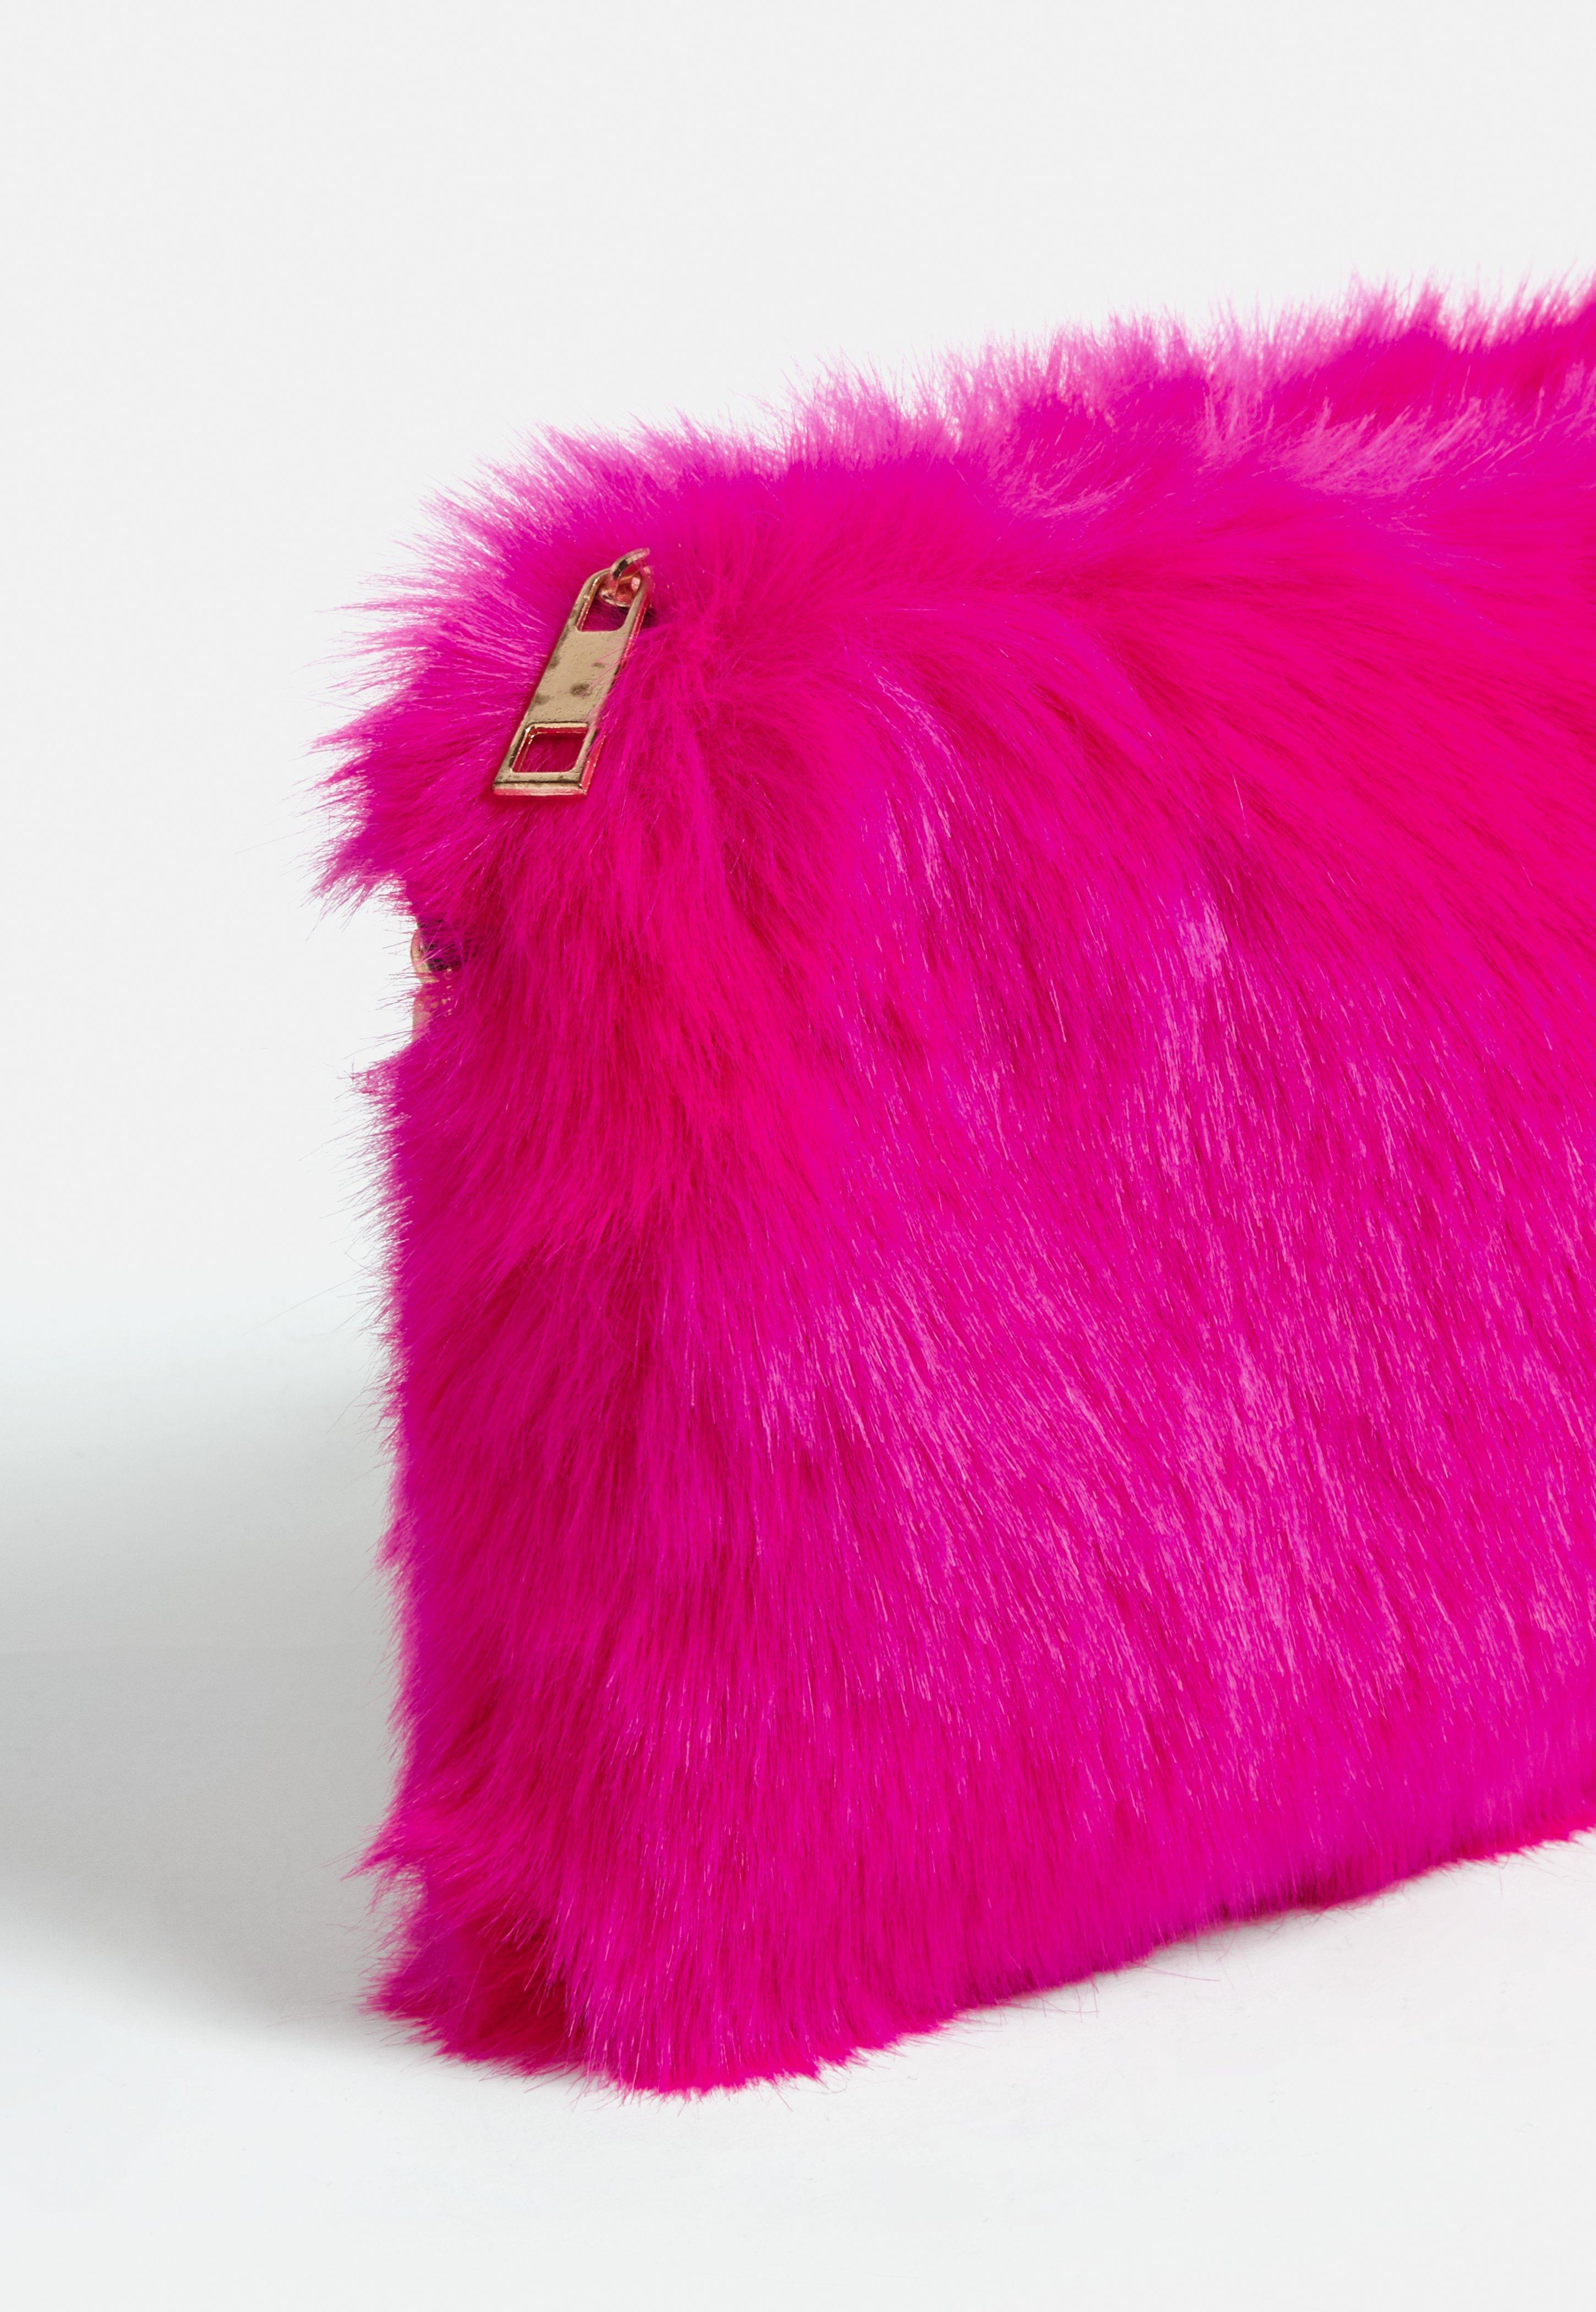 Lyst - Missguided Neon Pink Faux Fur Shoulder Bag in Pink 0cf00c515aec3